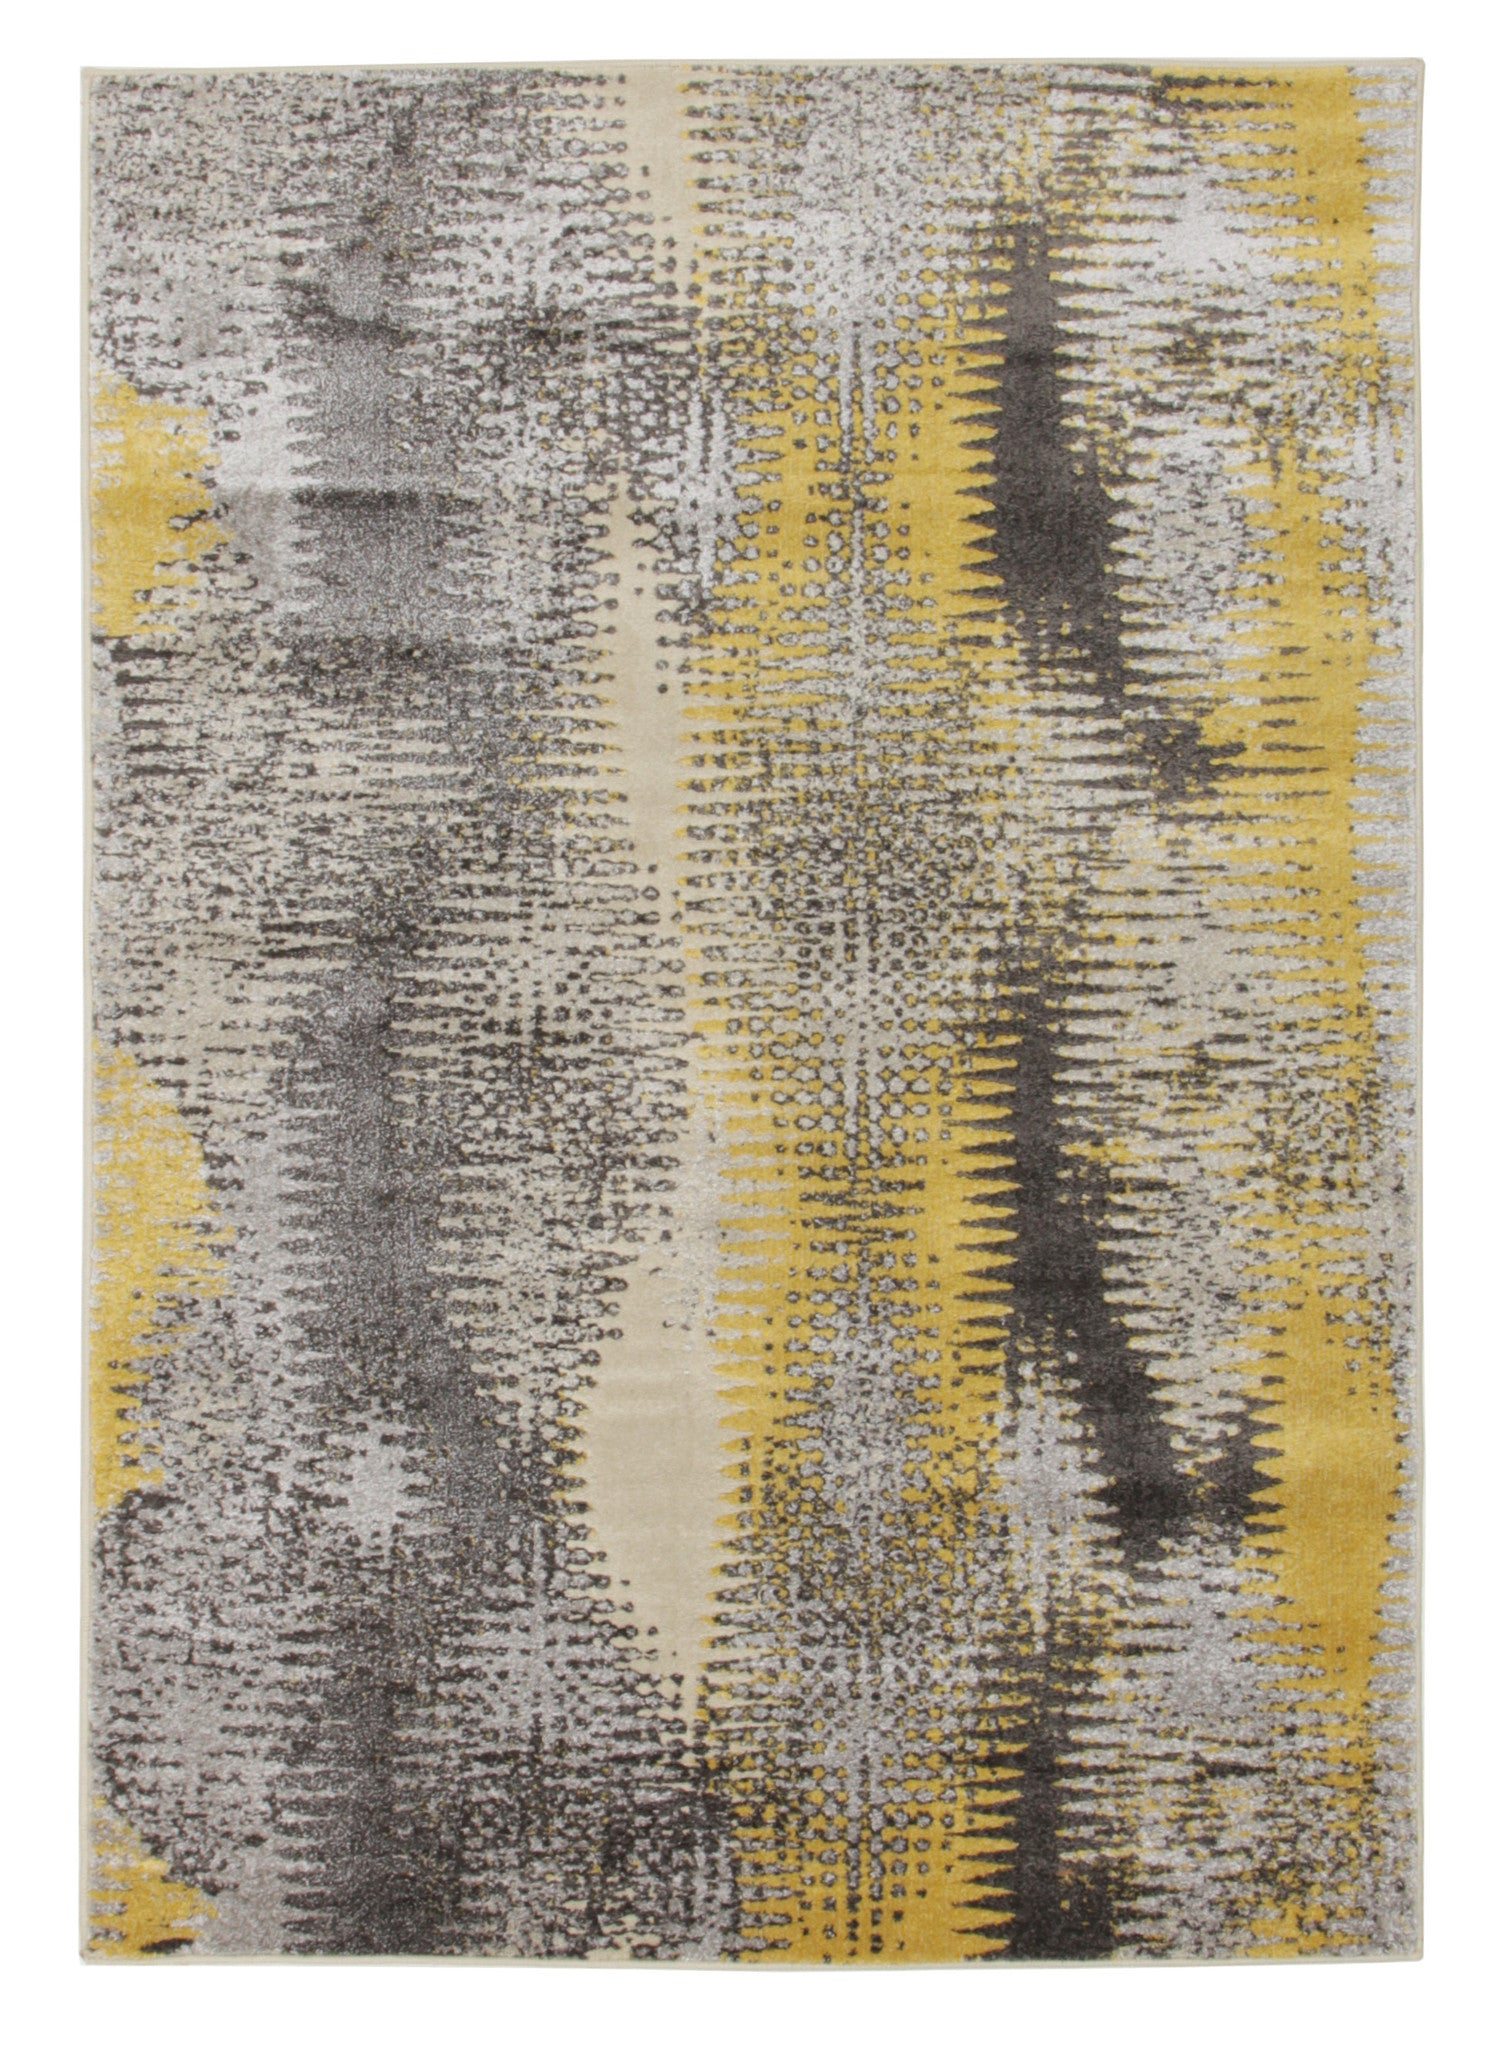 Nitro 952 Rug - Yellow Grey